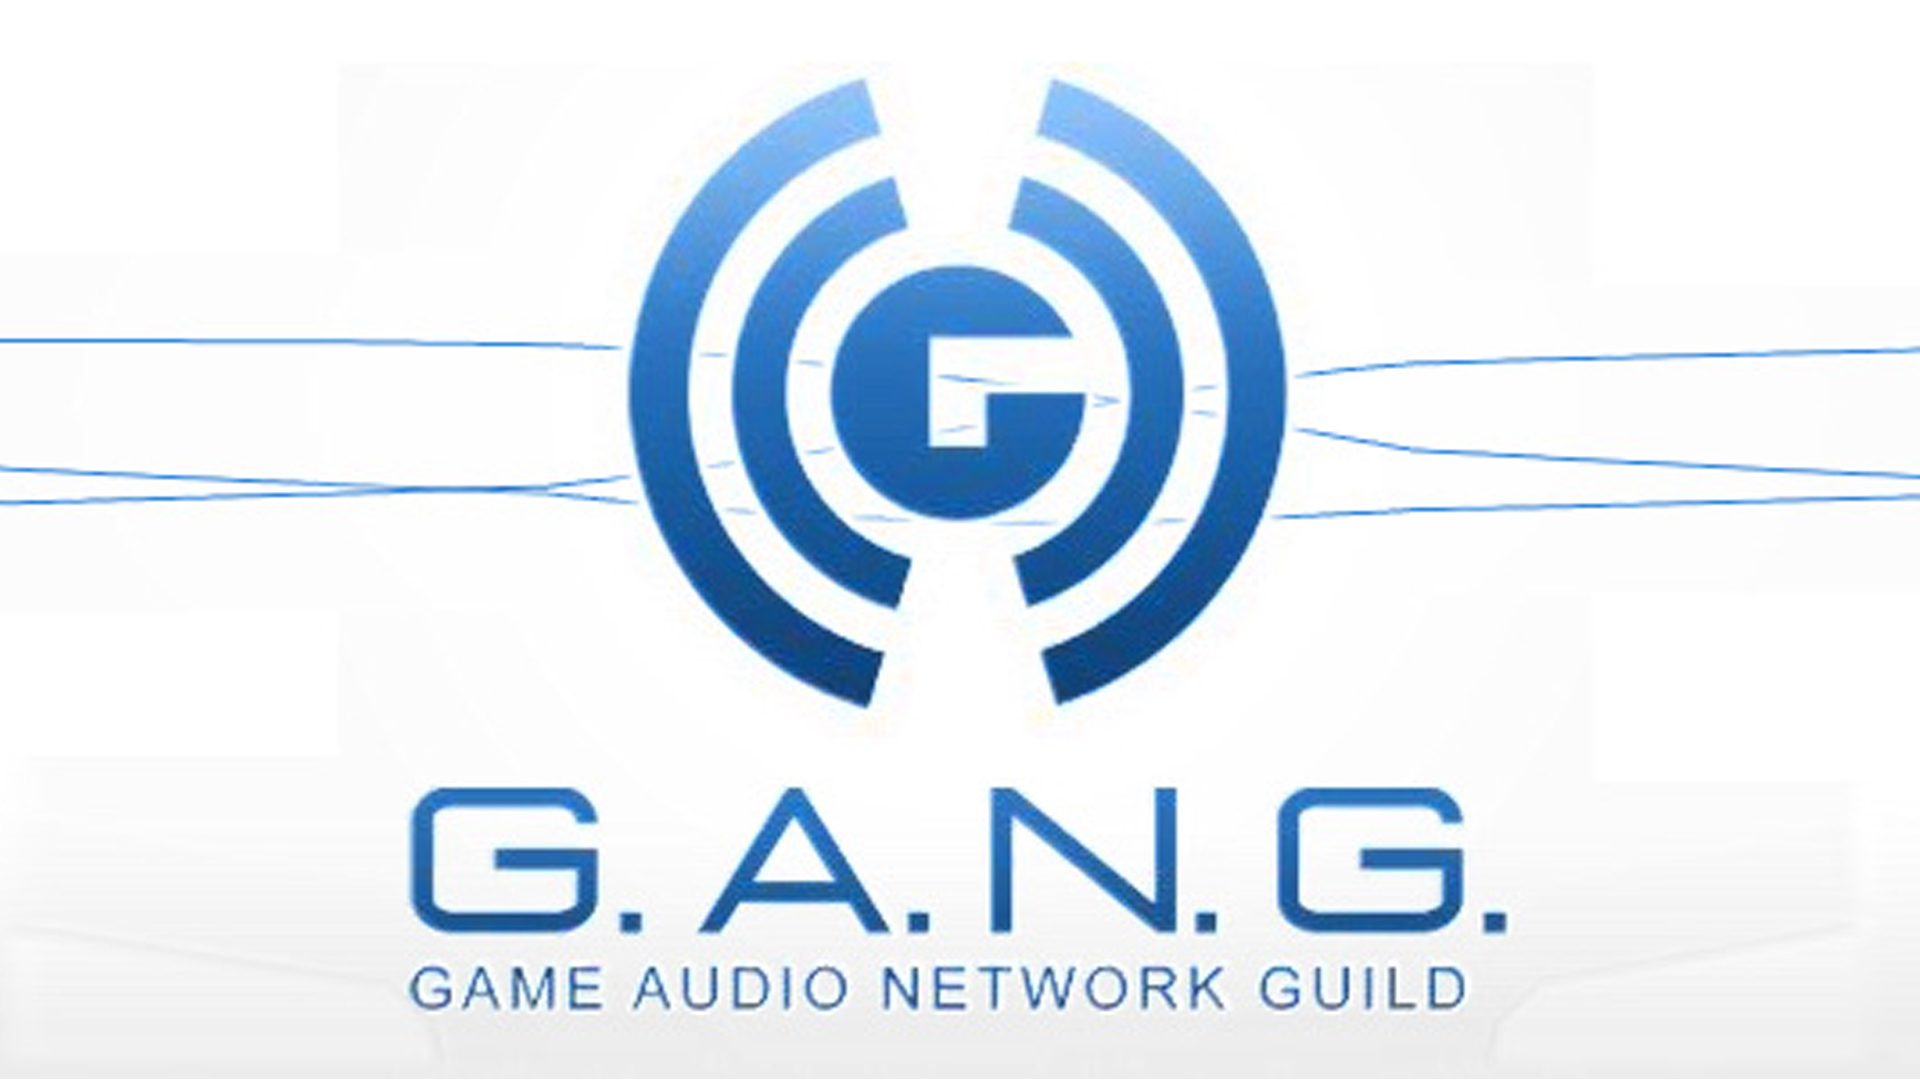 GAME AUDIO NETWORK GUILD